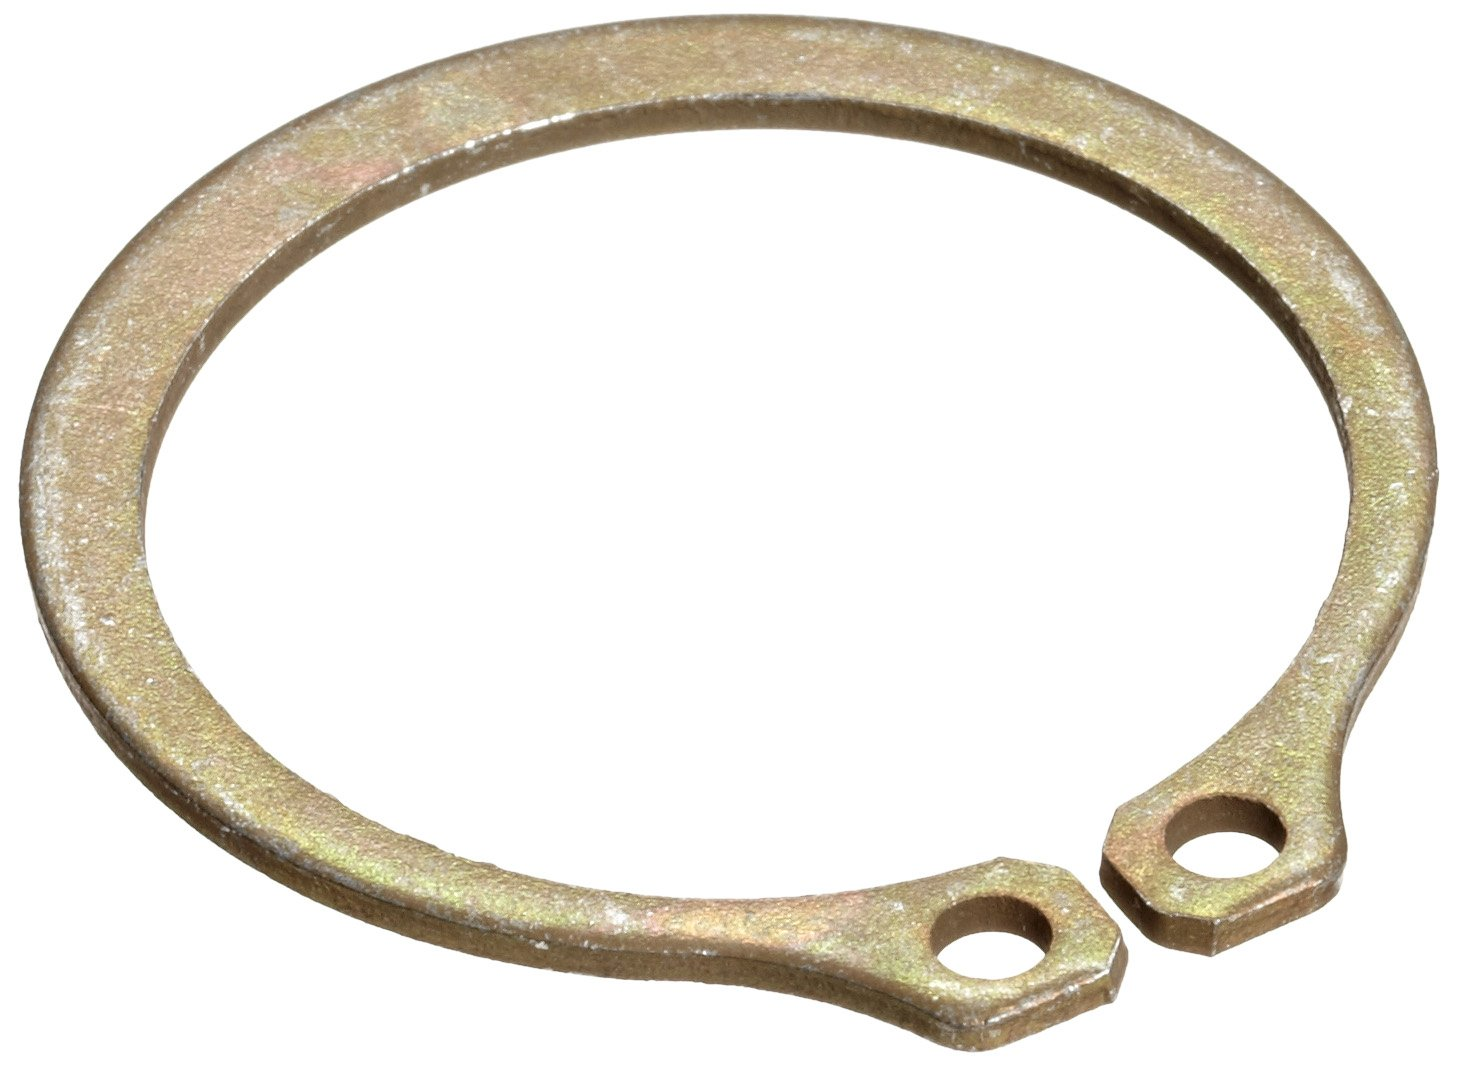 Rotor Clip SH-225ST ZD 2.25 in. Diameter Basic External Ring, Carbon Steel Zinc Dichromate Yellow, Pack - 5 Pieces